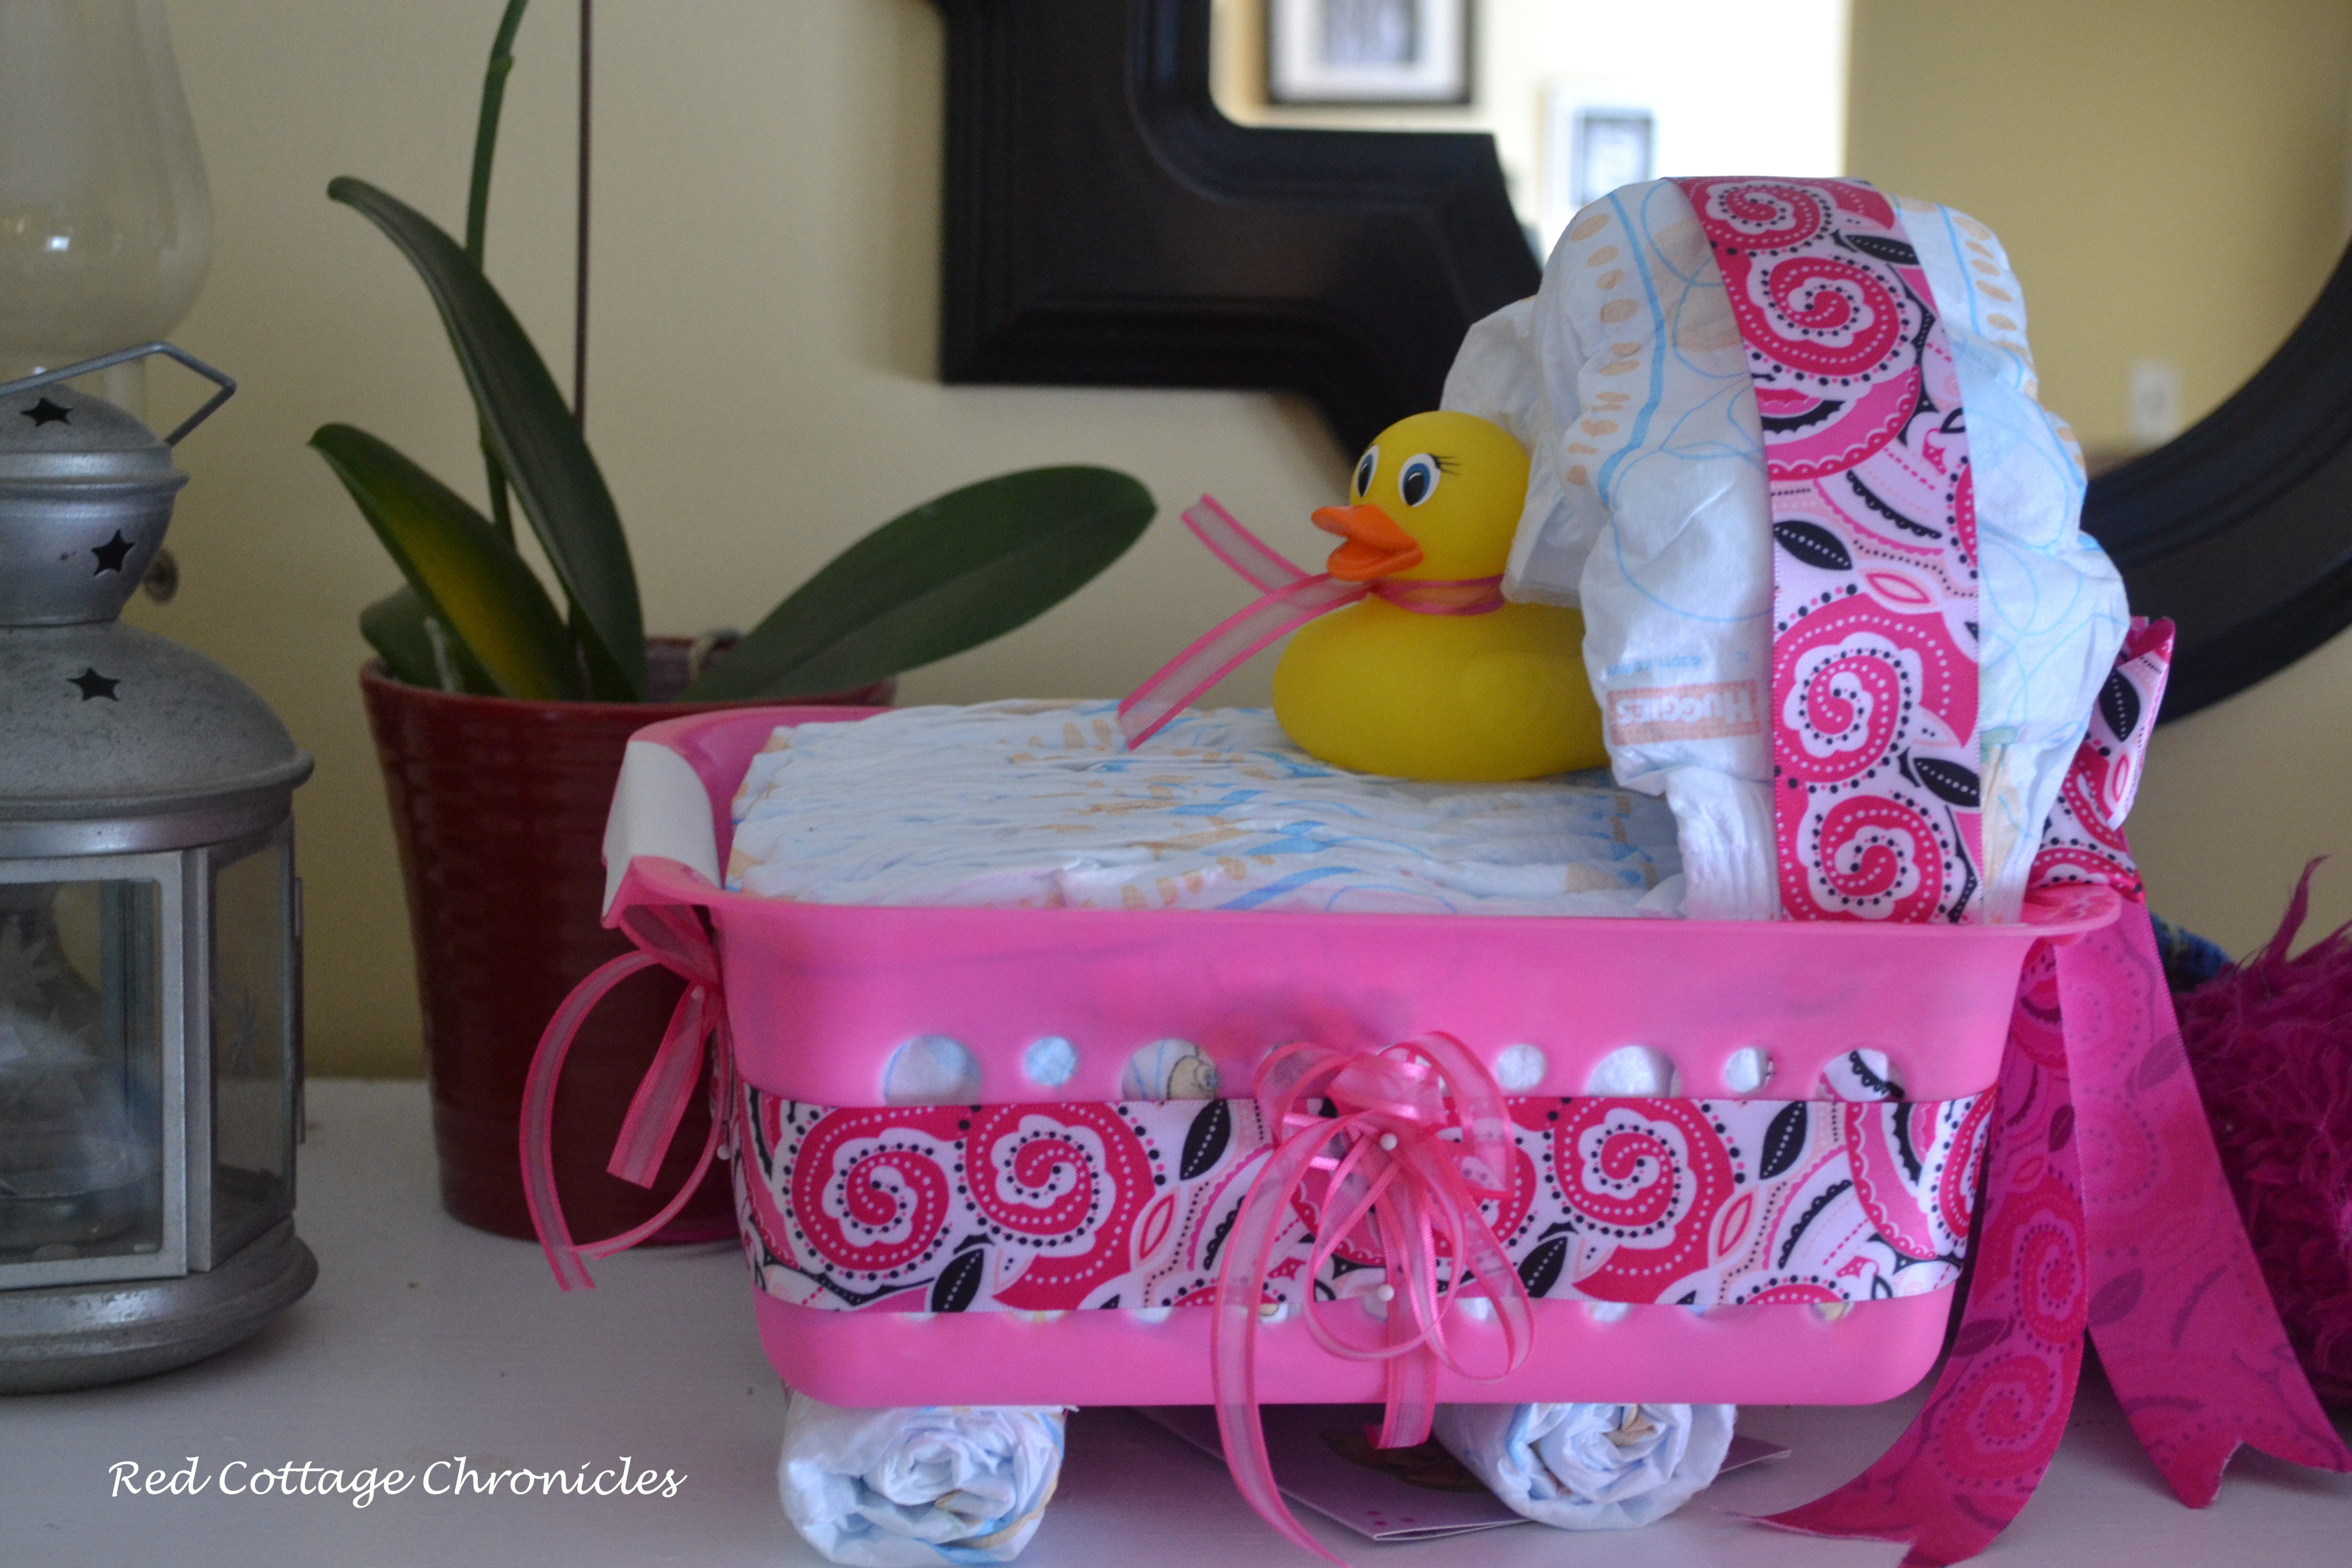 Gift Ideas For Baby  This Baby Shower Gift Idea is a practical t any new mom